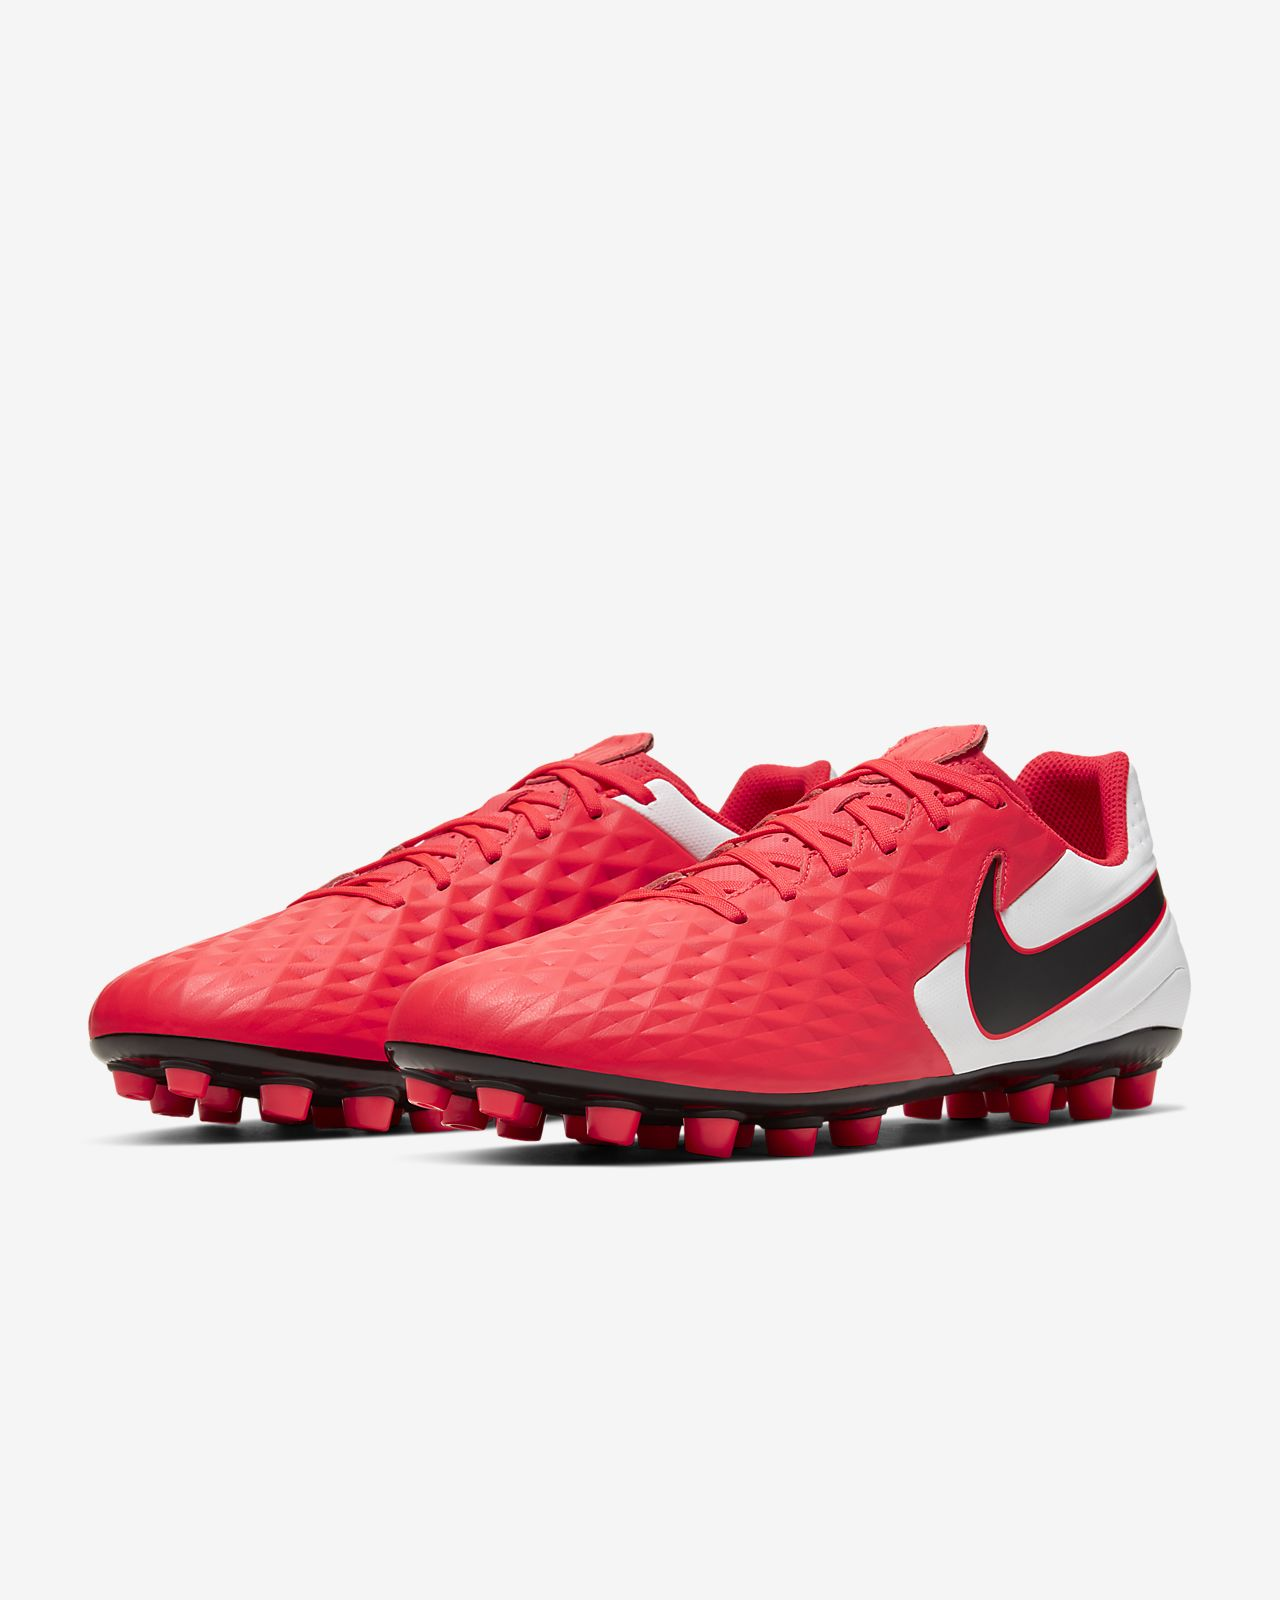 Nike Tiempo Legend 8 Academy TF Artificial Turf Football Shoe